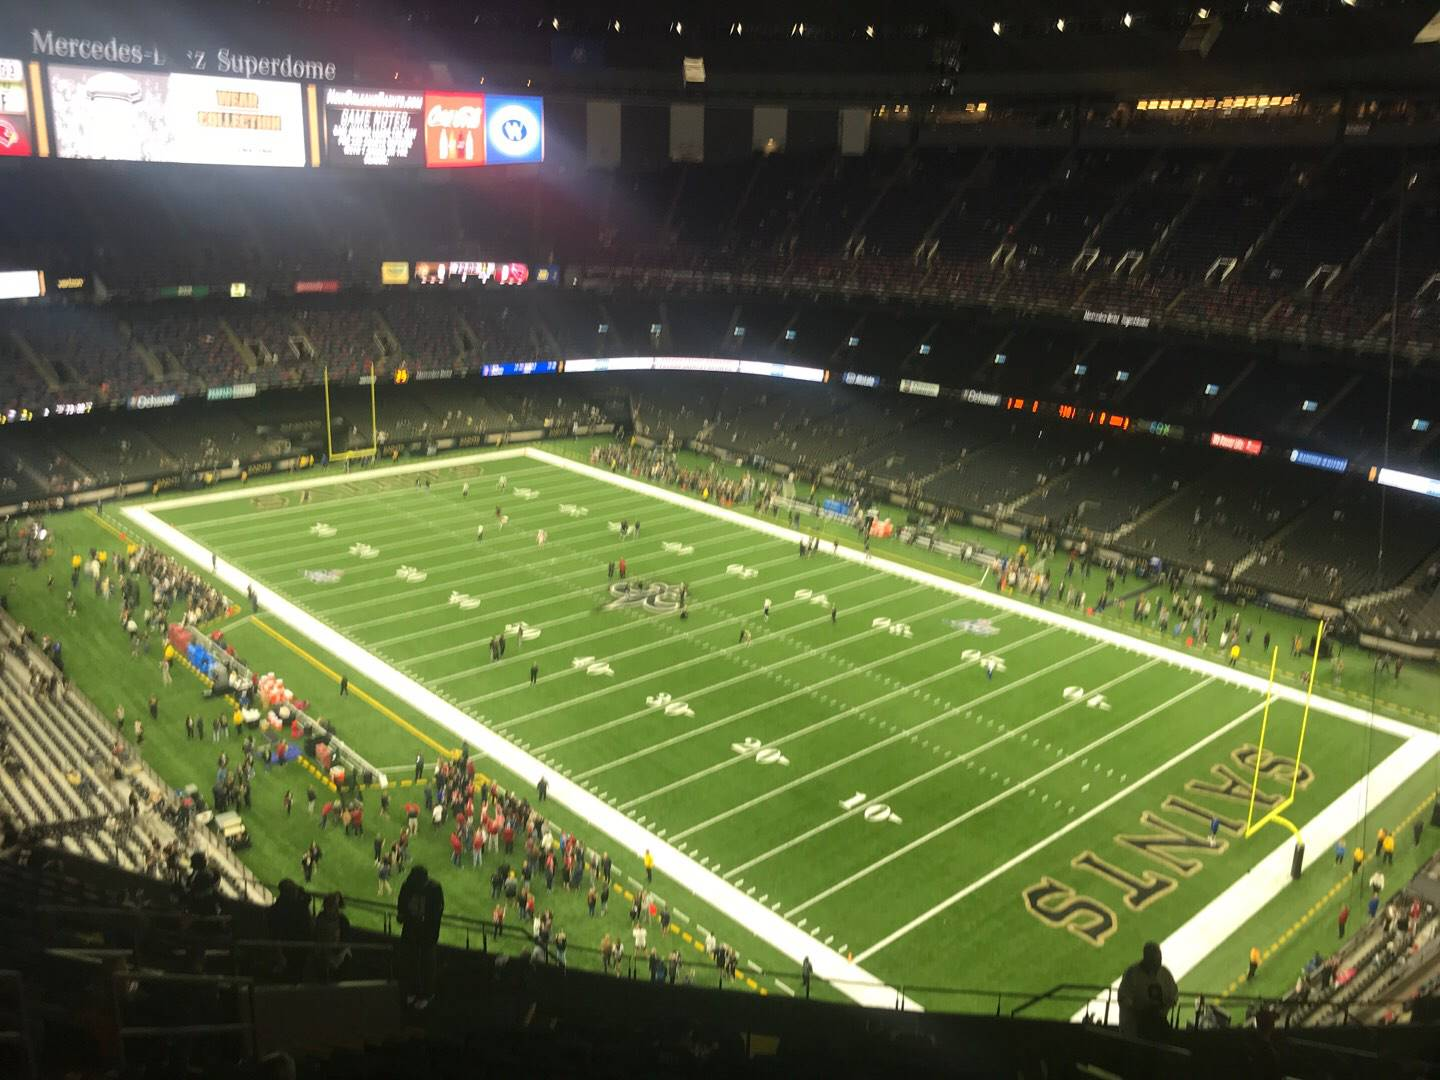 Mercedes-Benz Superdome Section 607 Row 22 Seat 12